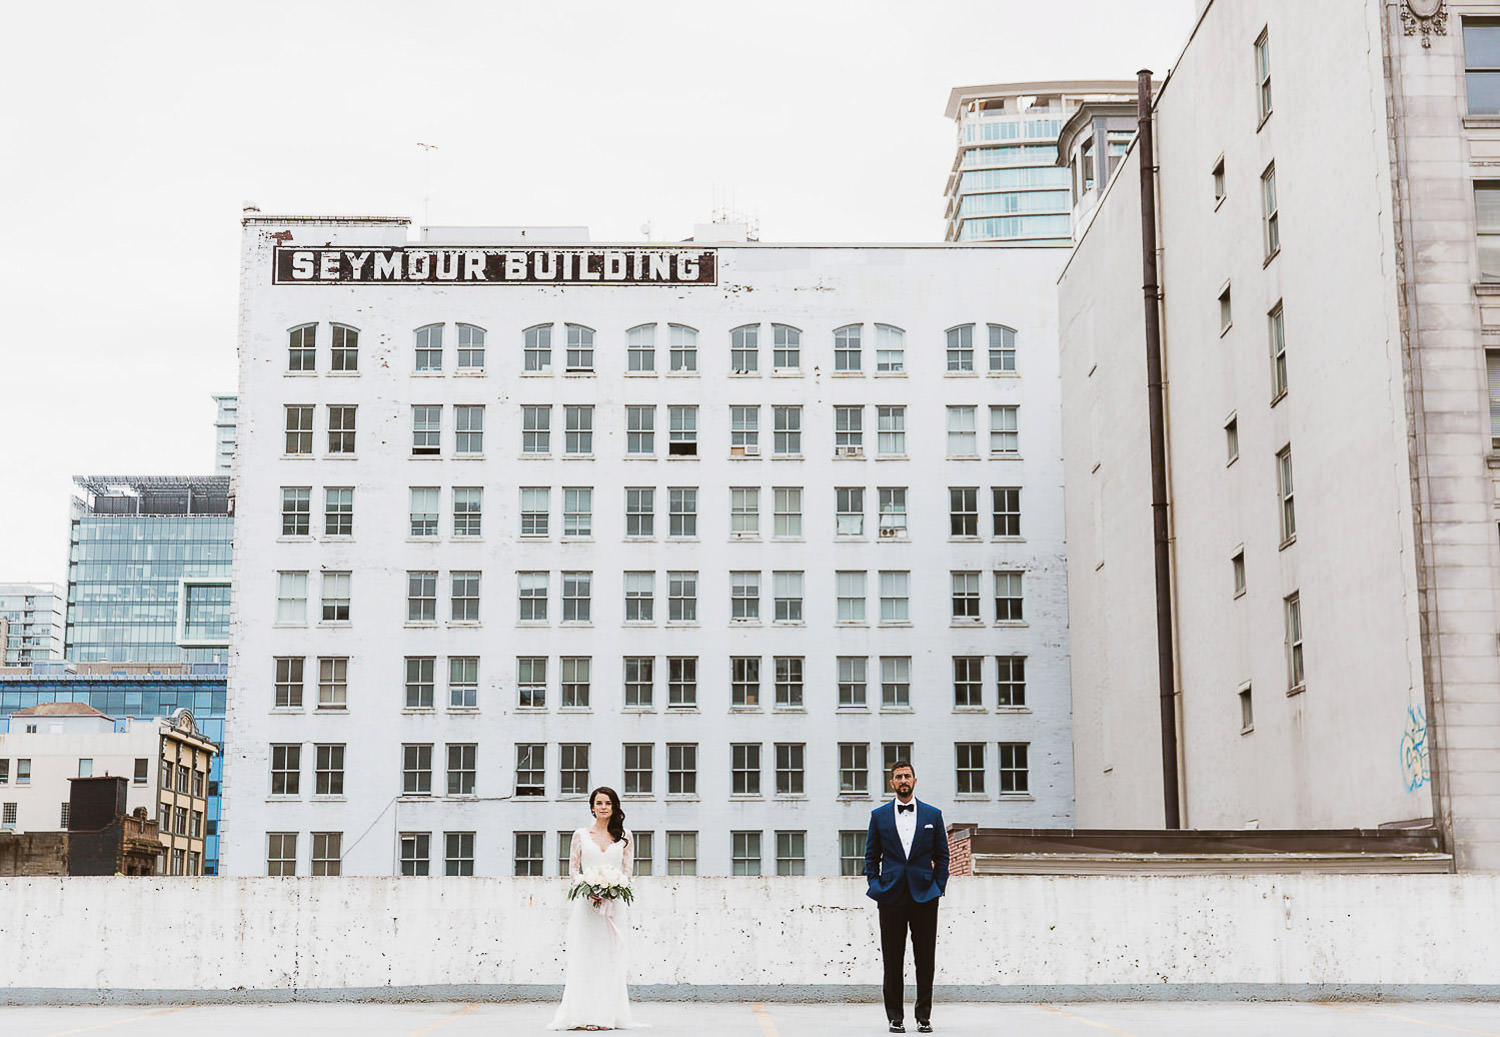 Stylish chic wedding, portrait in downtown vancouver rooftop | Photo: Camilla Anchisi